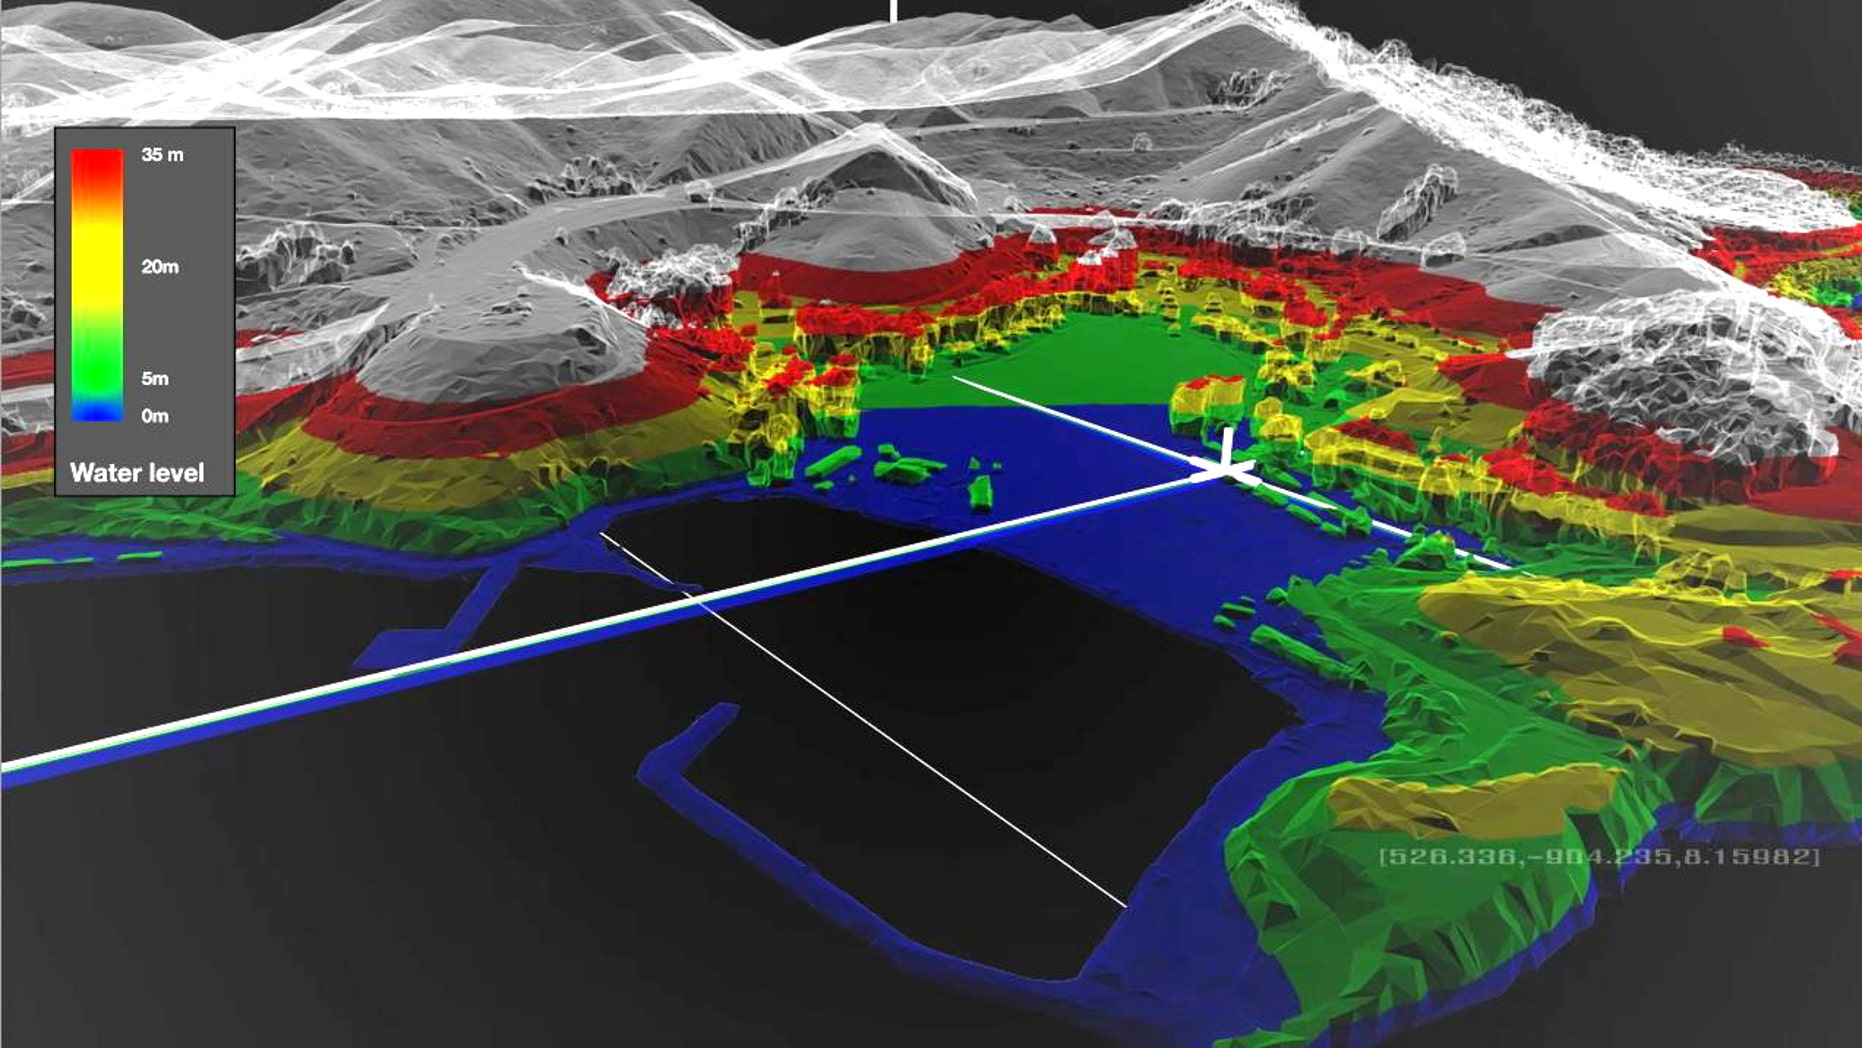 Saab's brand new military technology can create an incredibly detailed and accurate 3D map of a battlefield -- and shows troop and vehicle movements in real time.